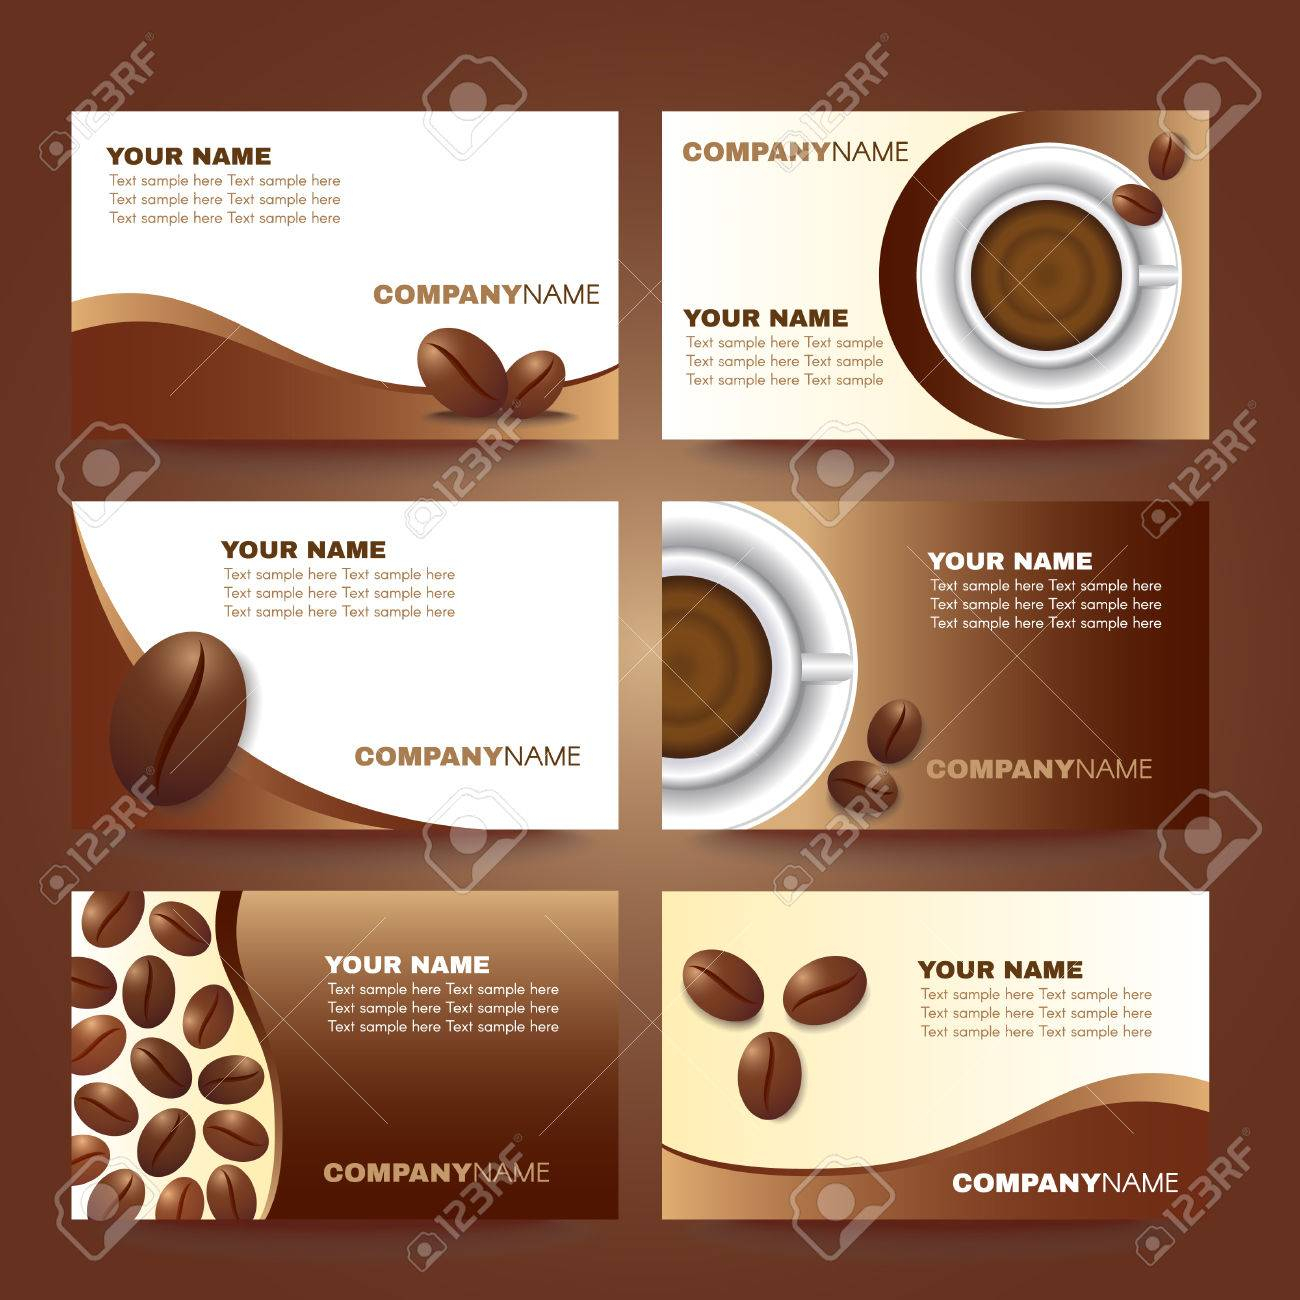 Coffee Business Card Template Vector Set Design Inside Coffee Business Card Template Free